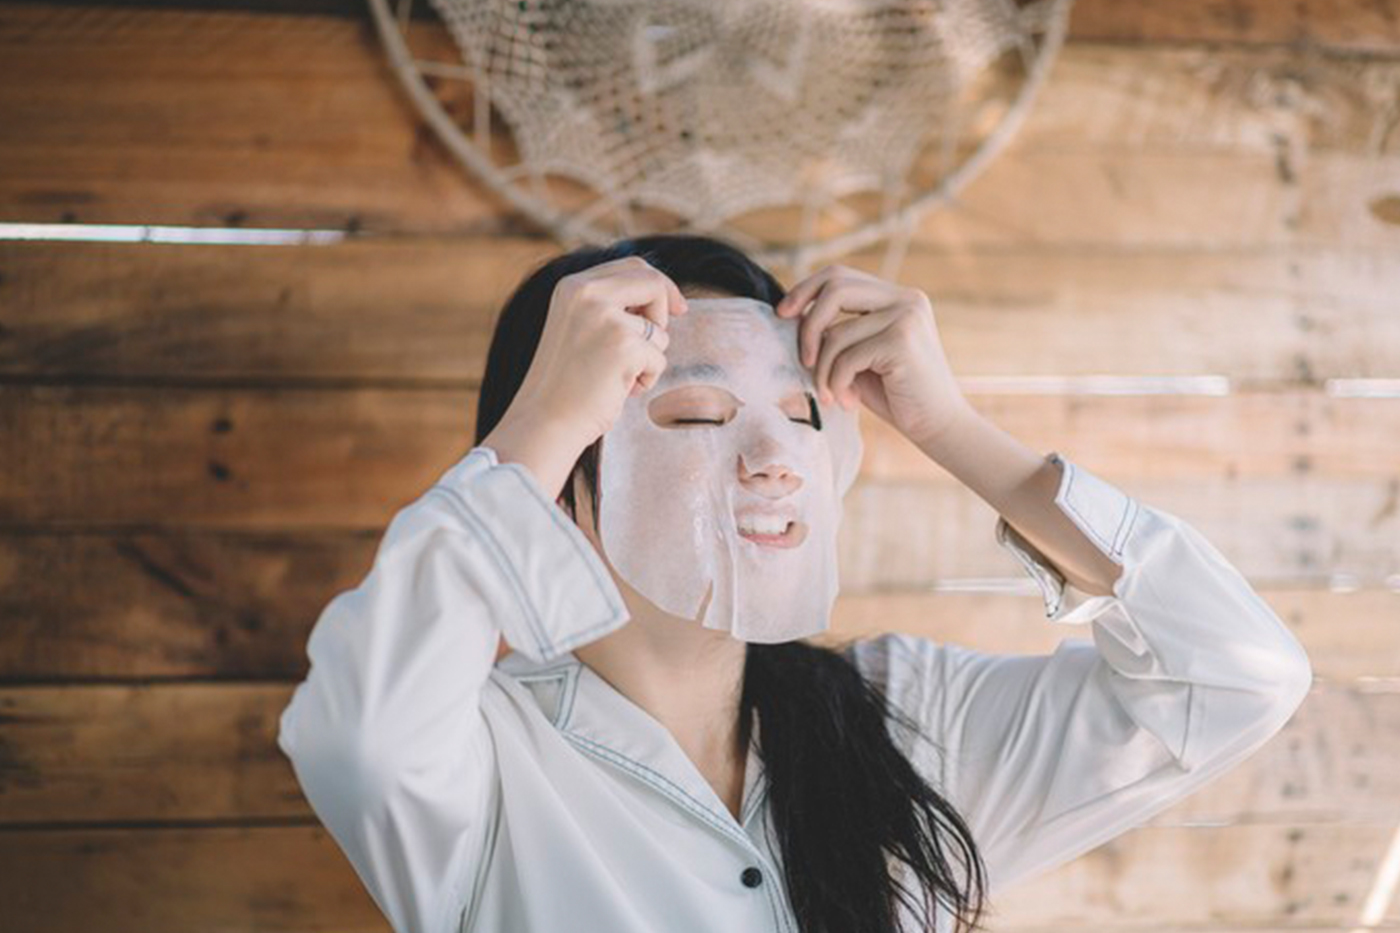 Consumers look for sustainable options for facial sheet masks